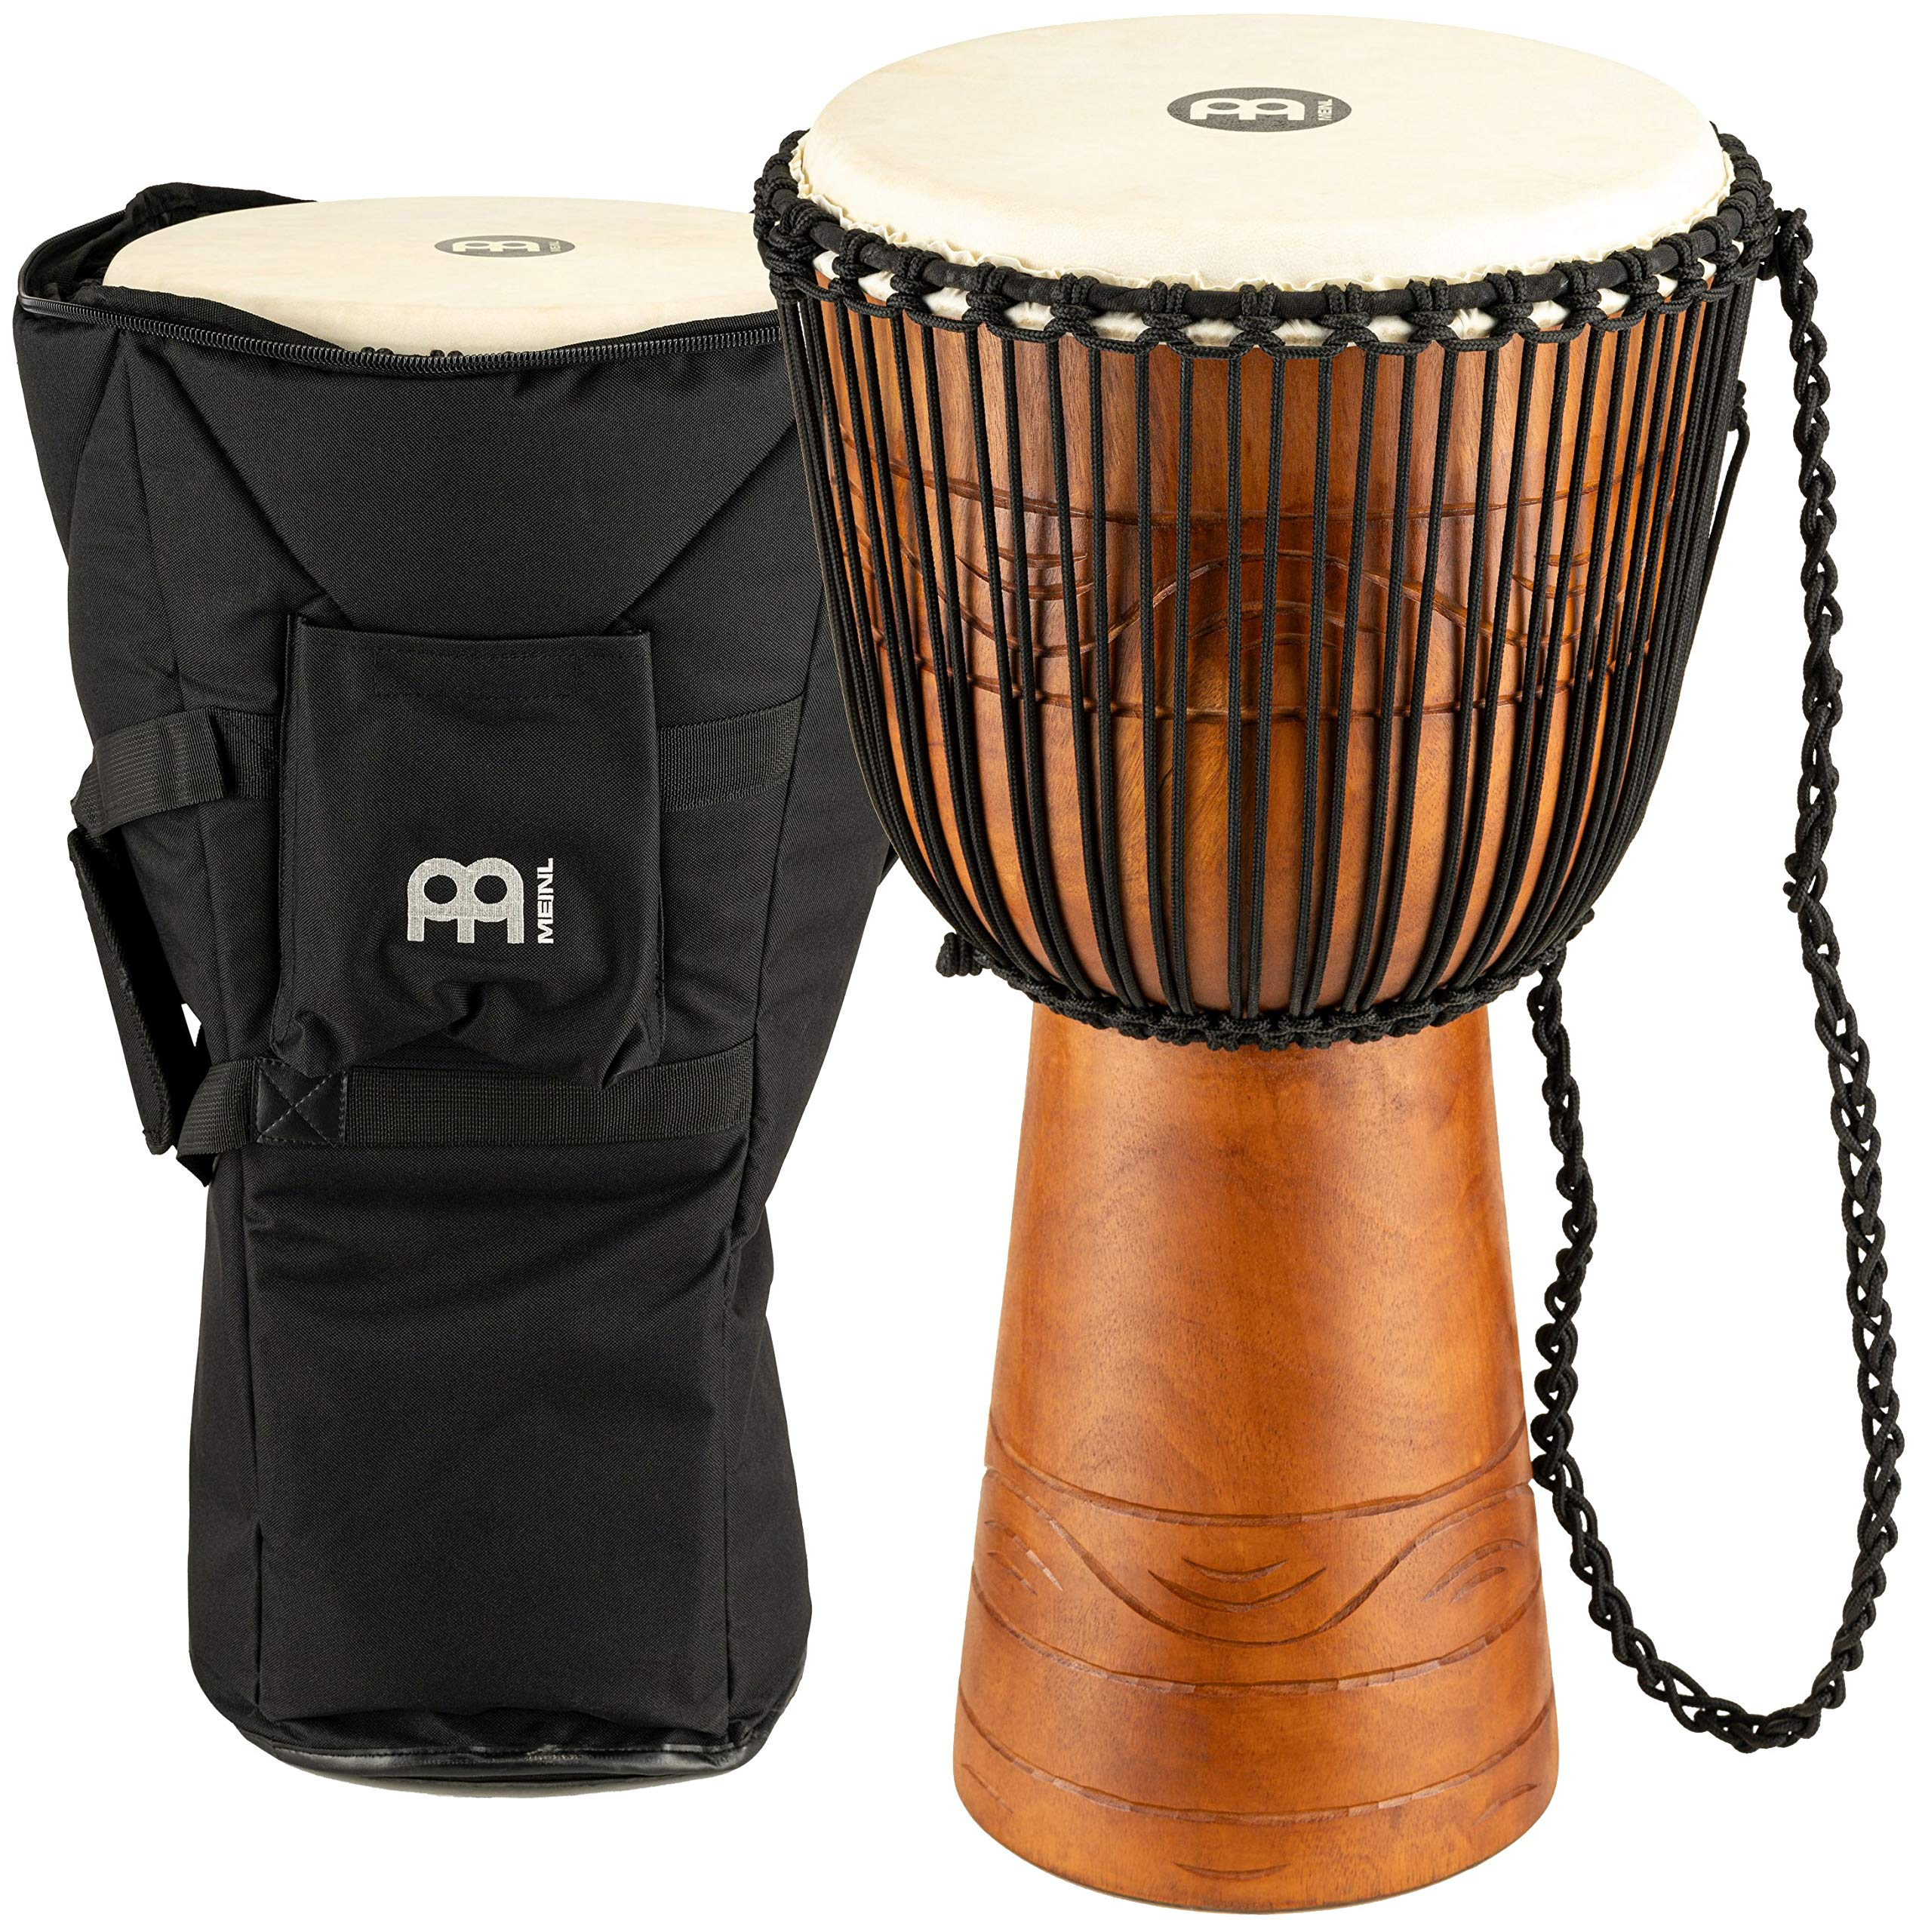 Meinl Percussion ADJ2-L+BAG African Style Rope Tuned 12-Inch Wood Djembe with Bag, Brown by Meinl Percussion